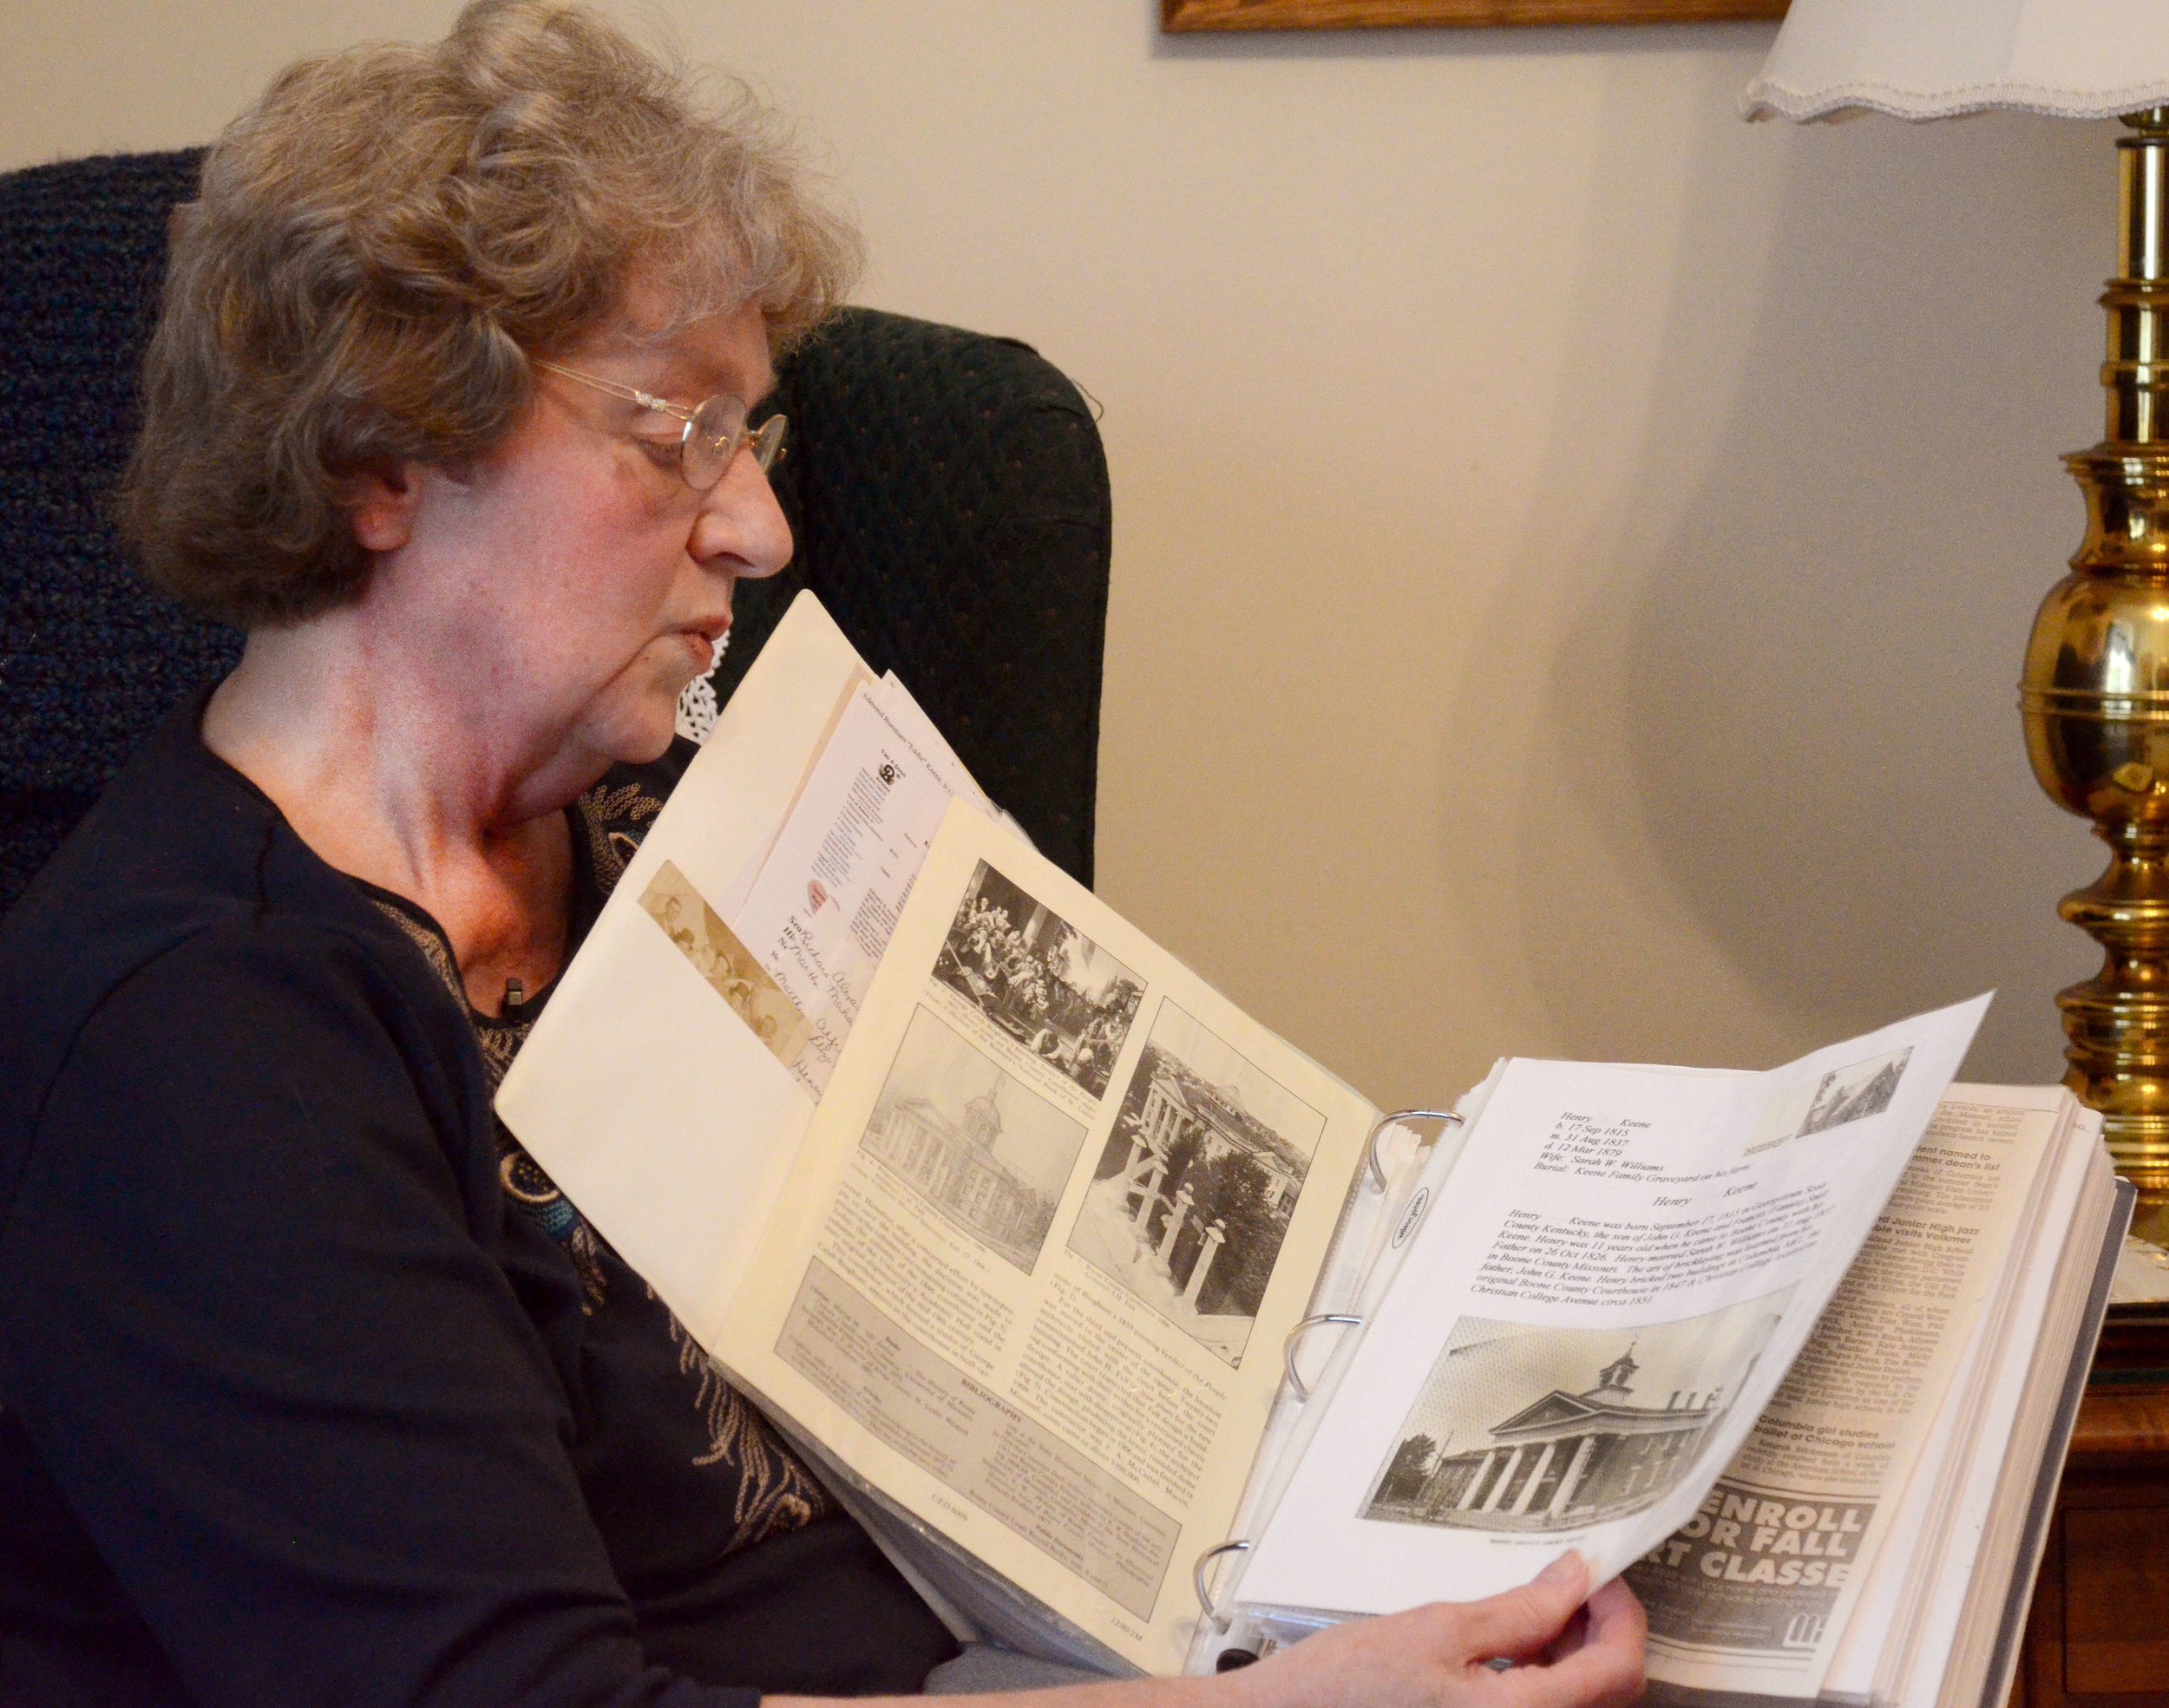 Bette Keene Scavone looks through one of the binders she put together that is full of documents on her family history on Wednesday, March 23, 2016, in Columbia, Missouri. She has put together dozens of binders on her family history.